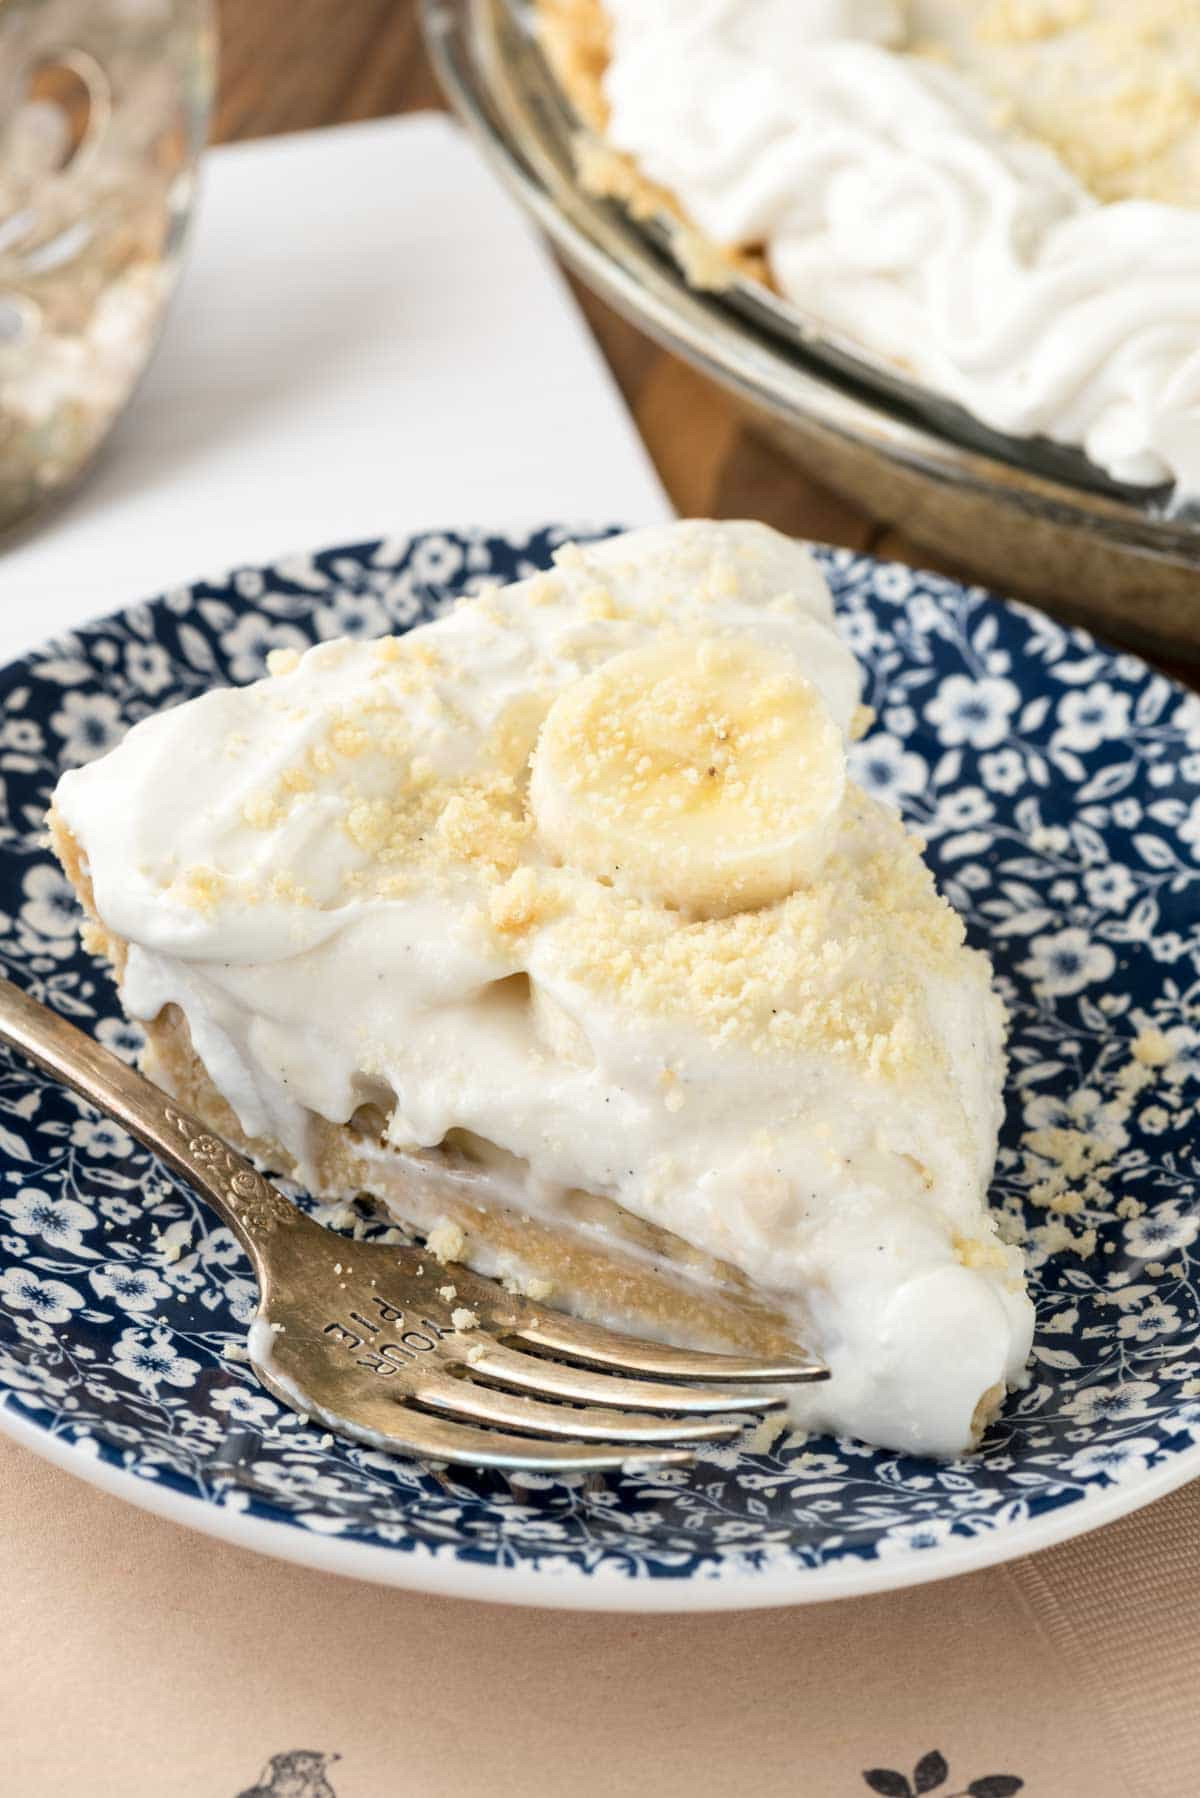 Banana Cream Pie With Pudding  Old Fashioned Banana Pudding Pie Crazy for Crust